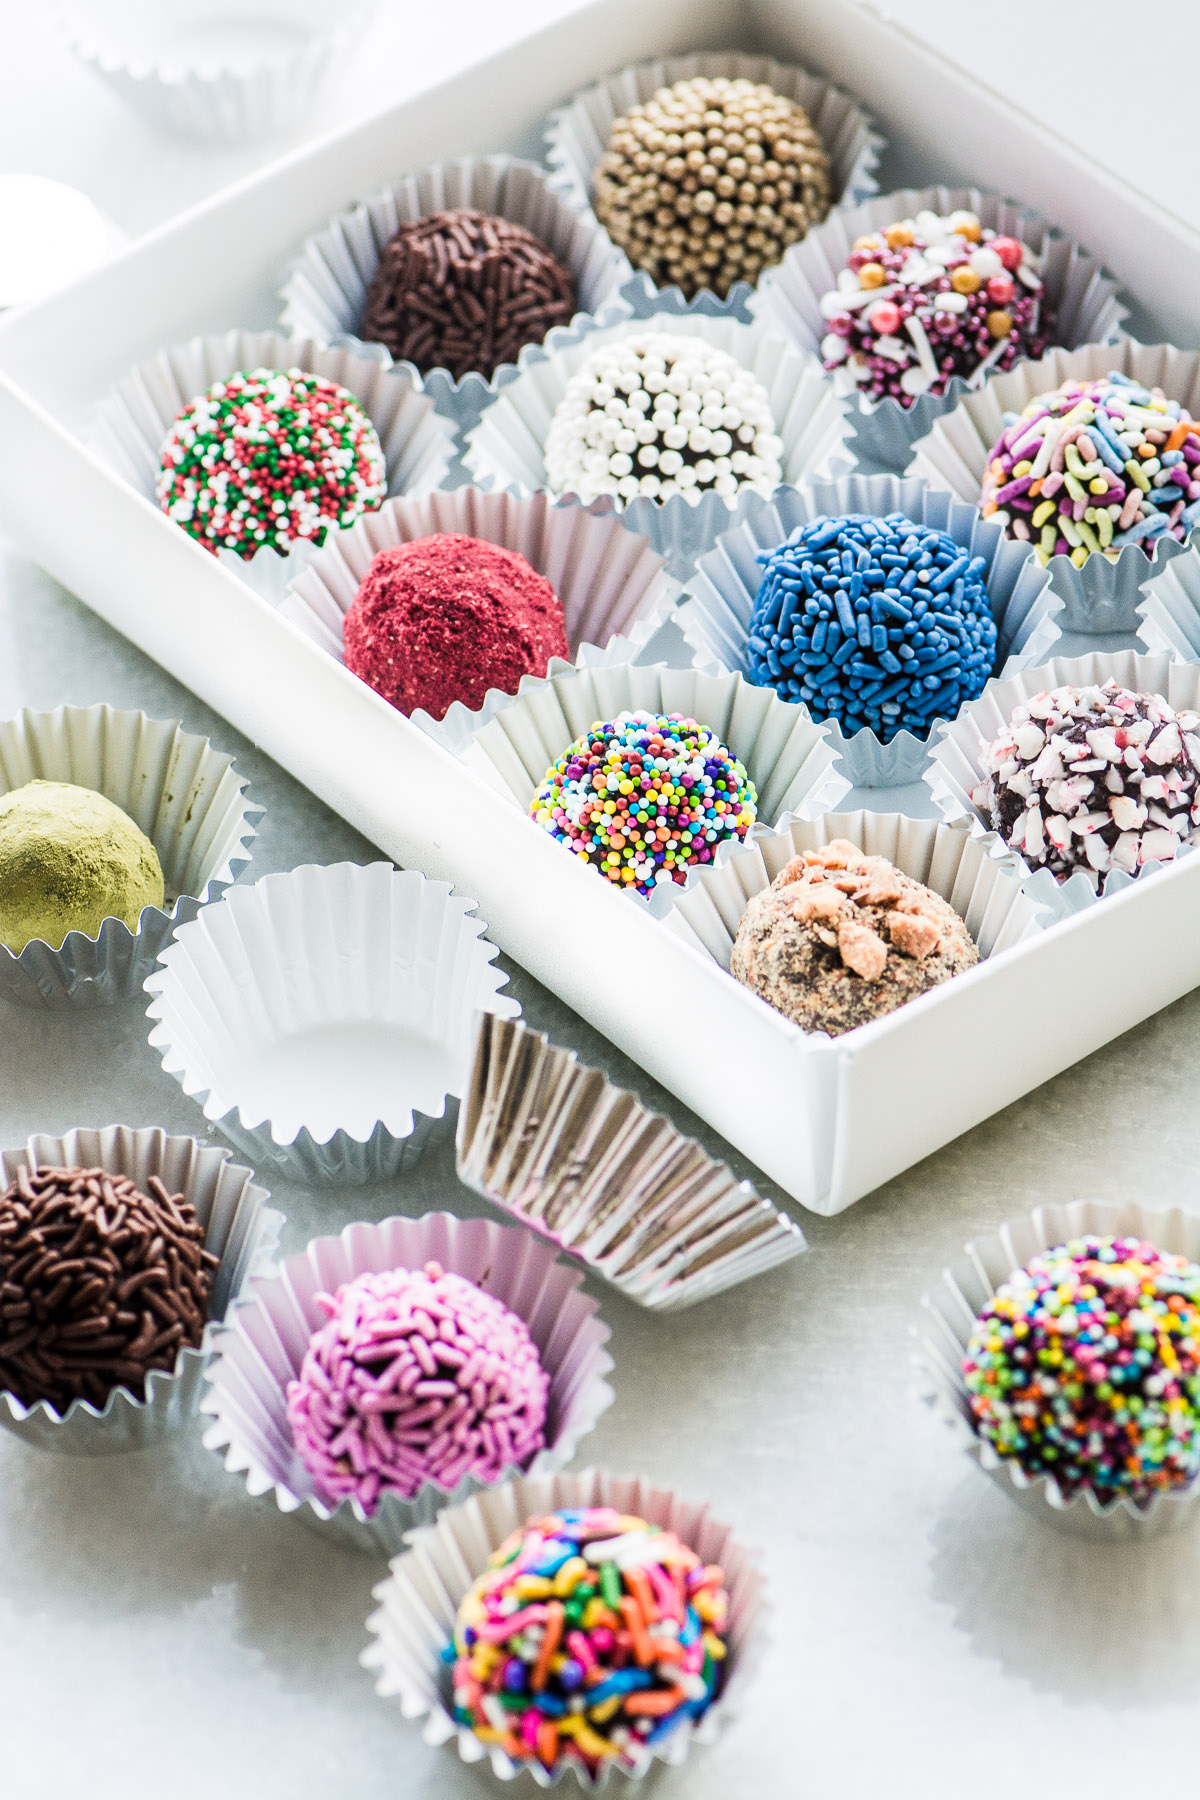 colorful chocolate truffles in a box